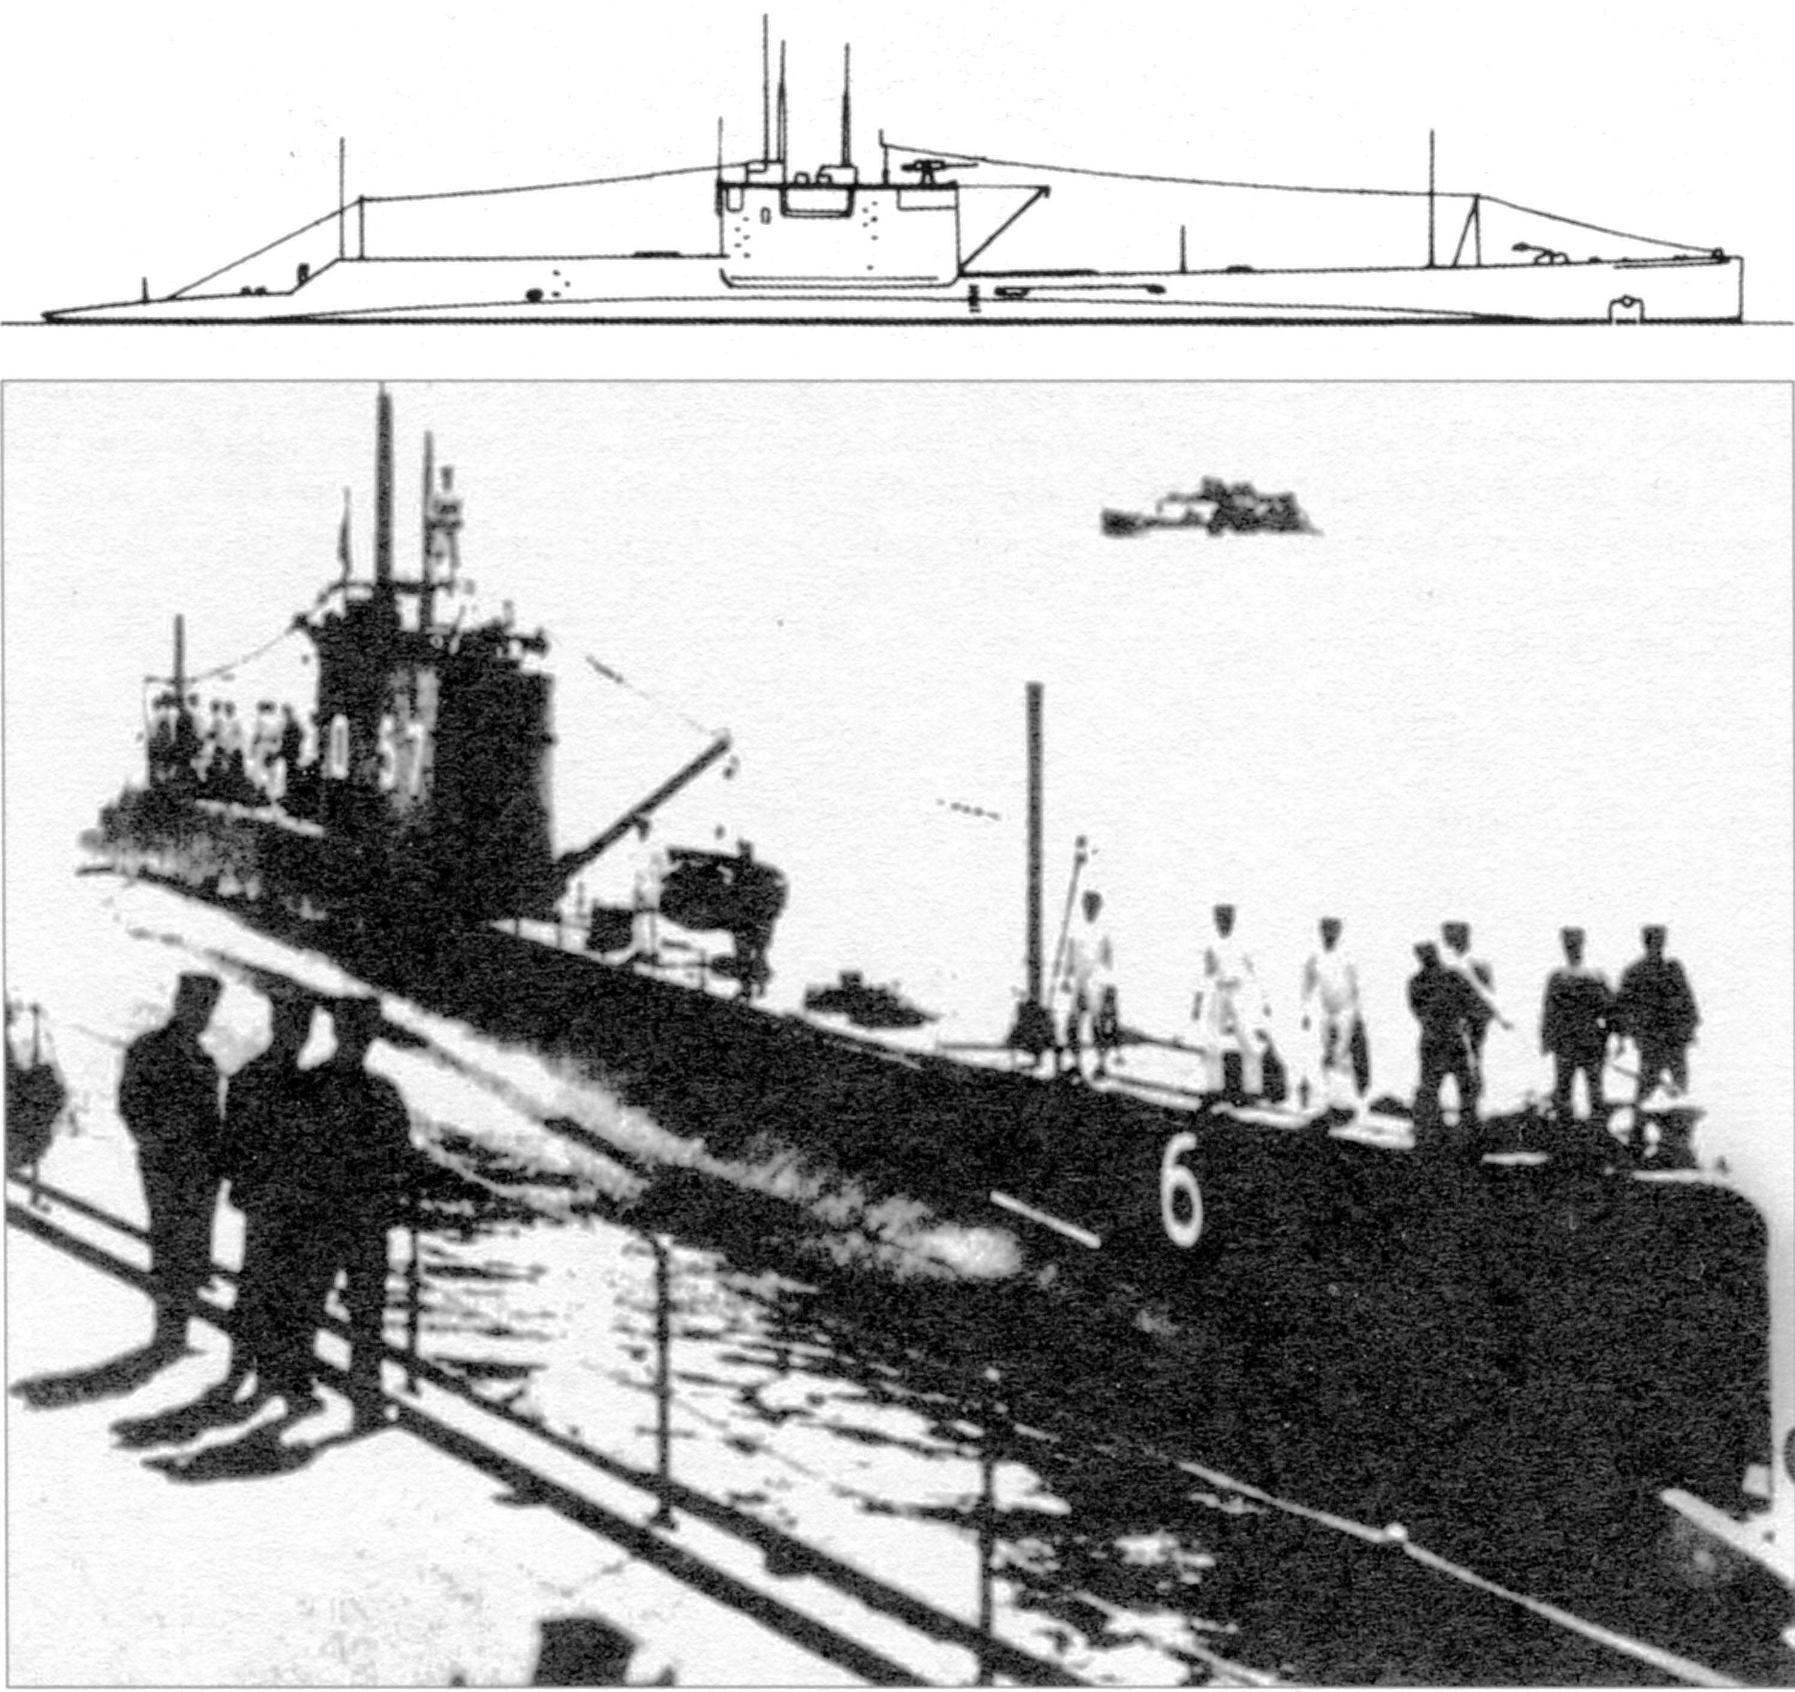 Submarine No. 46